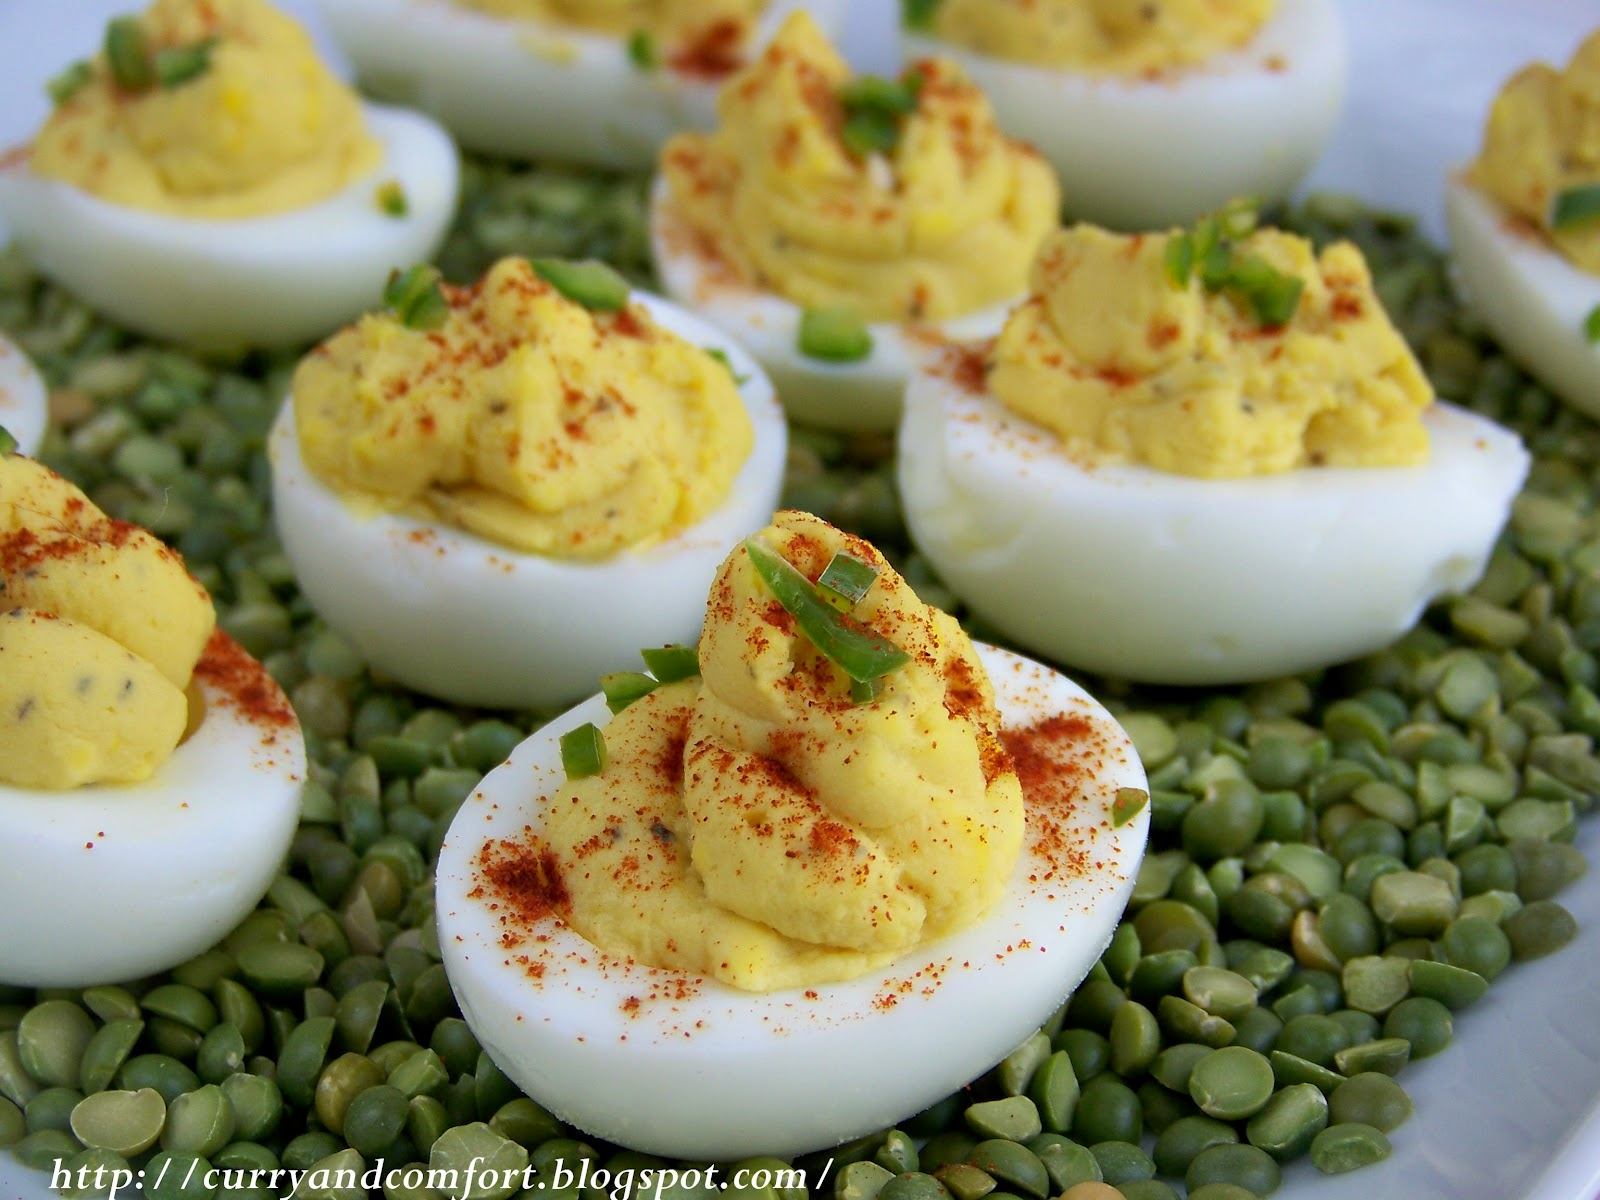 Curry and Comfort: Egg-cellent Honey Dijon Mustard Deviled Eggs